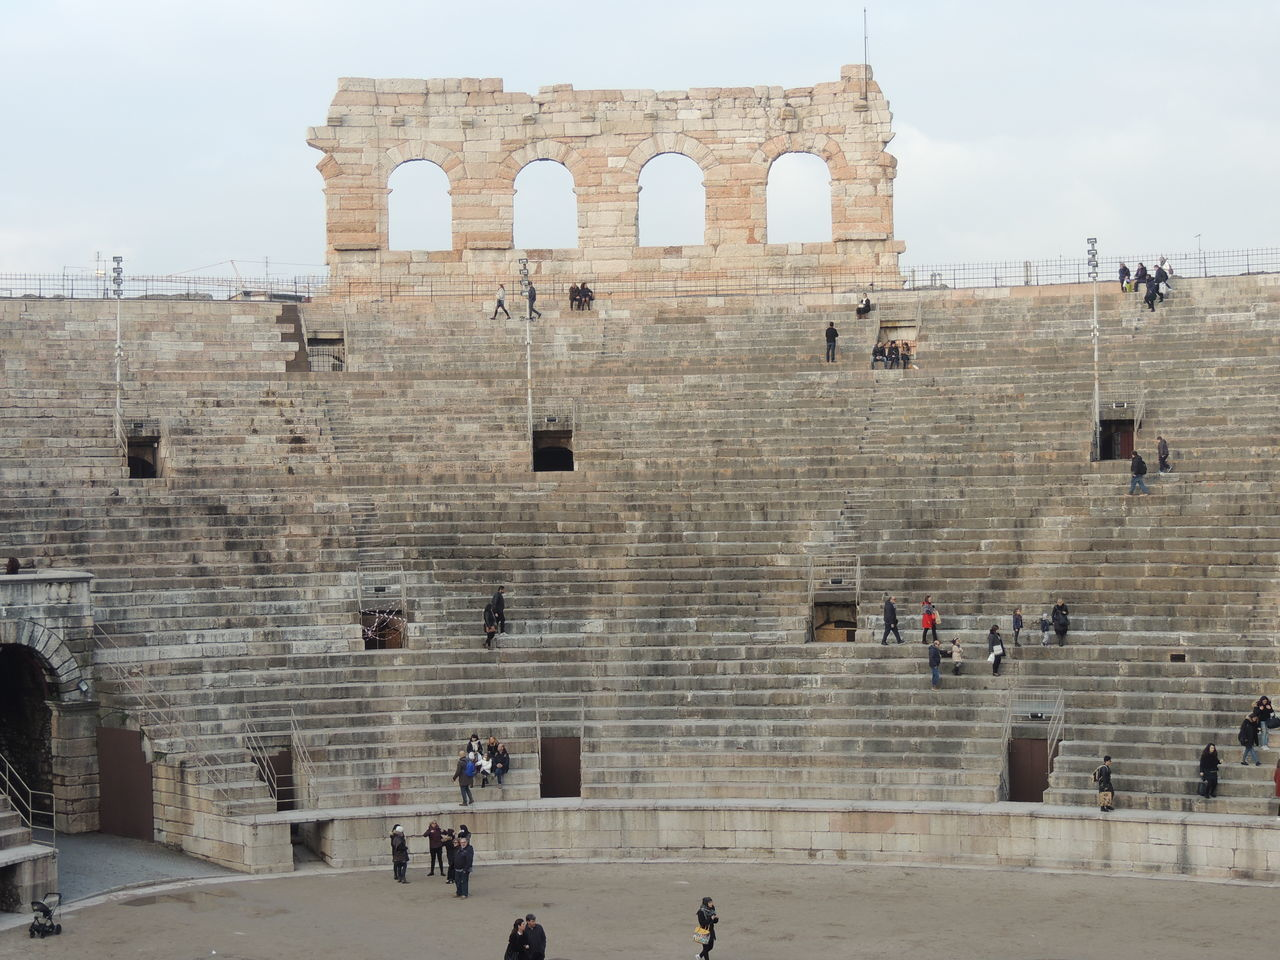 Ancient Ancient Civilization Ancient History Archaeology Architecture Arts Culture And Entertainment Built Structure Day History Large Group Of People Leisure Activity Lifestyles Men Monument Old Ruin Outdoors People The Past Tourism Tourist Travel Travel Destinations Vacations Visiting Women